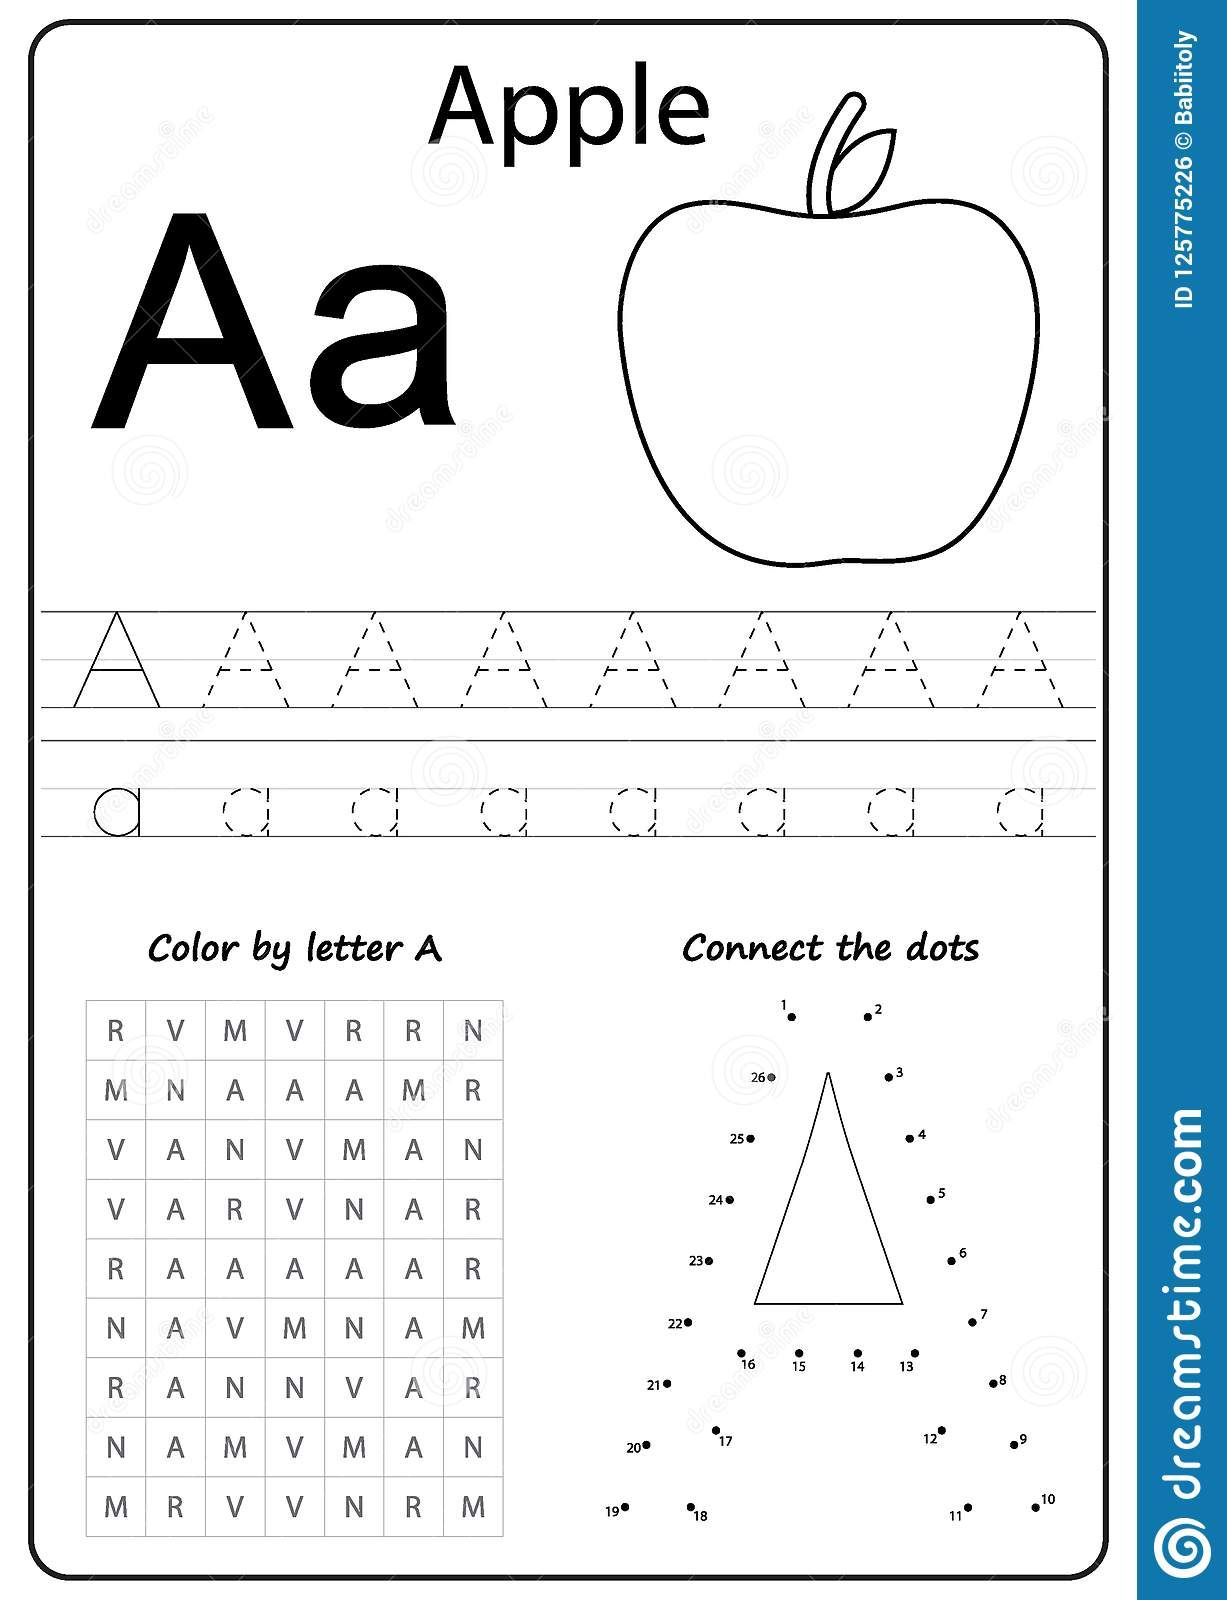 Download 11 025 Letter Worksheet Stock Illustrations